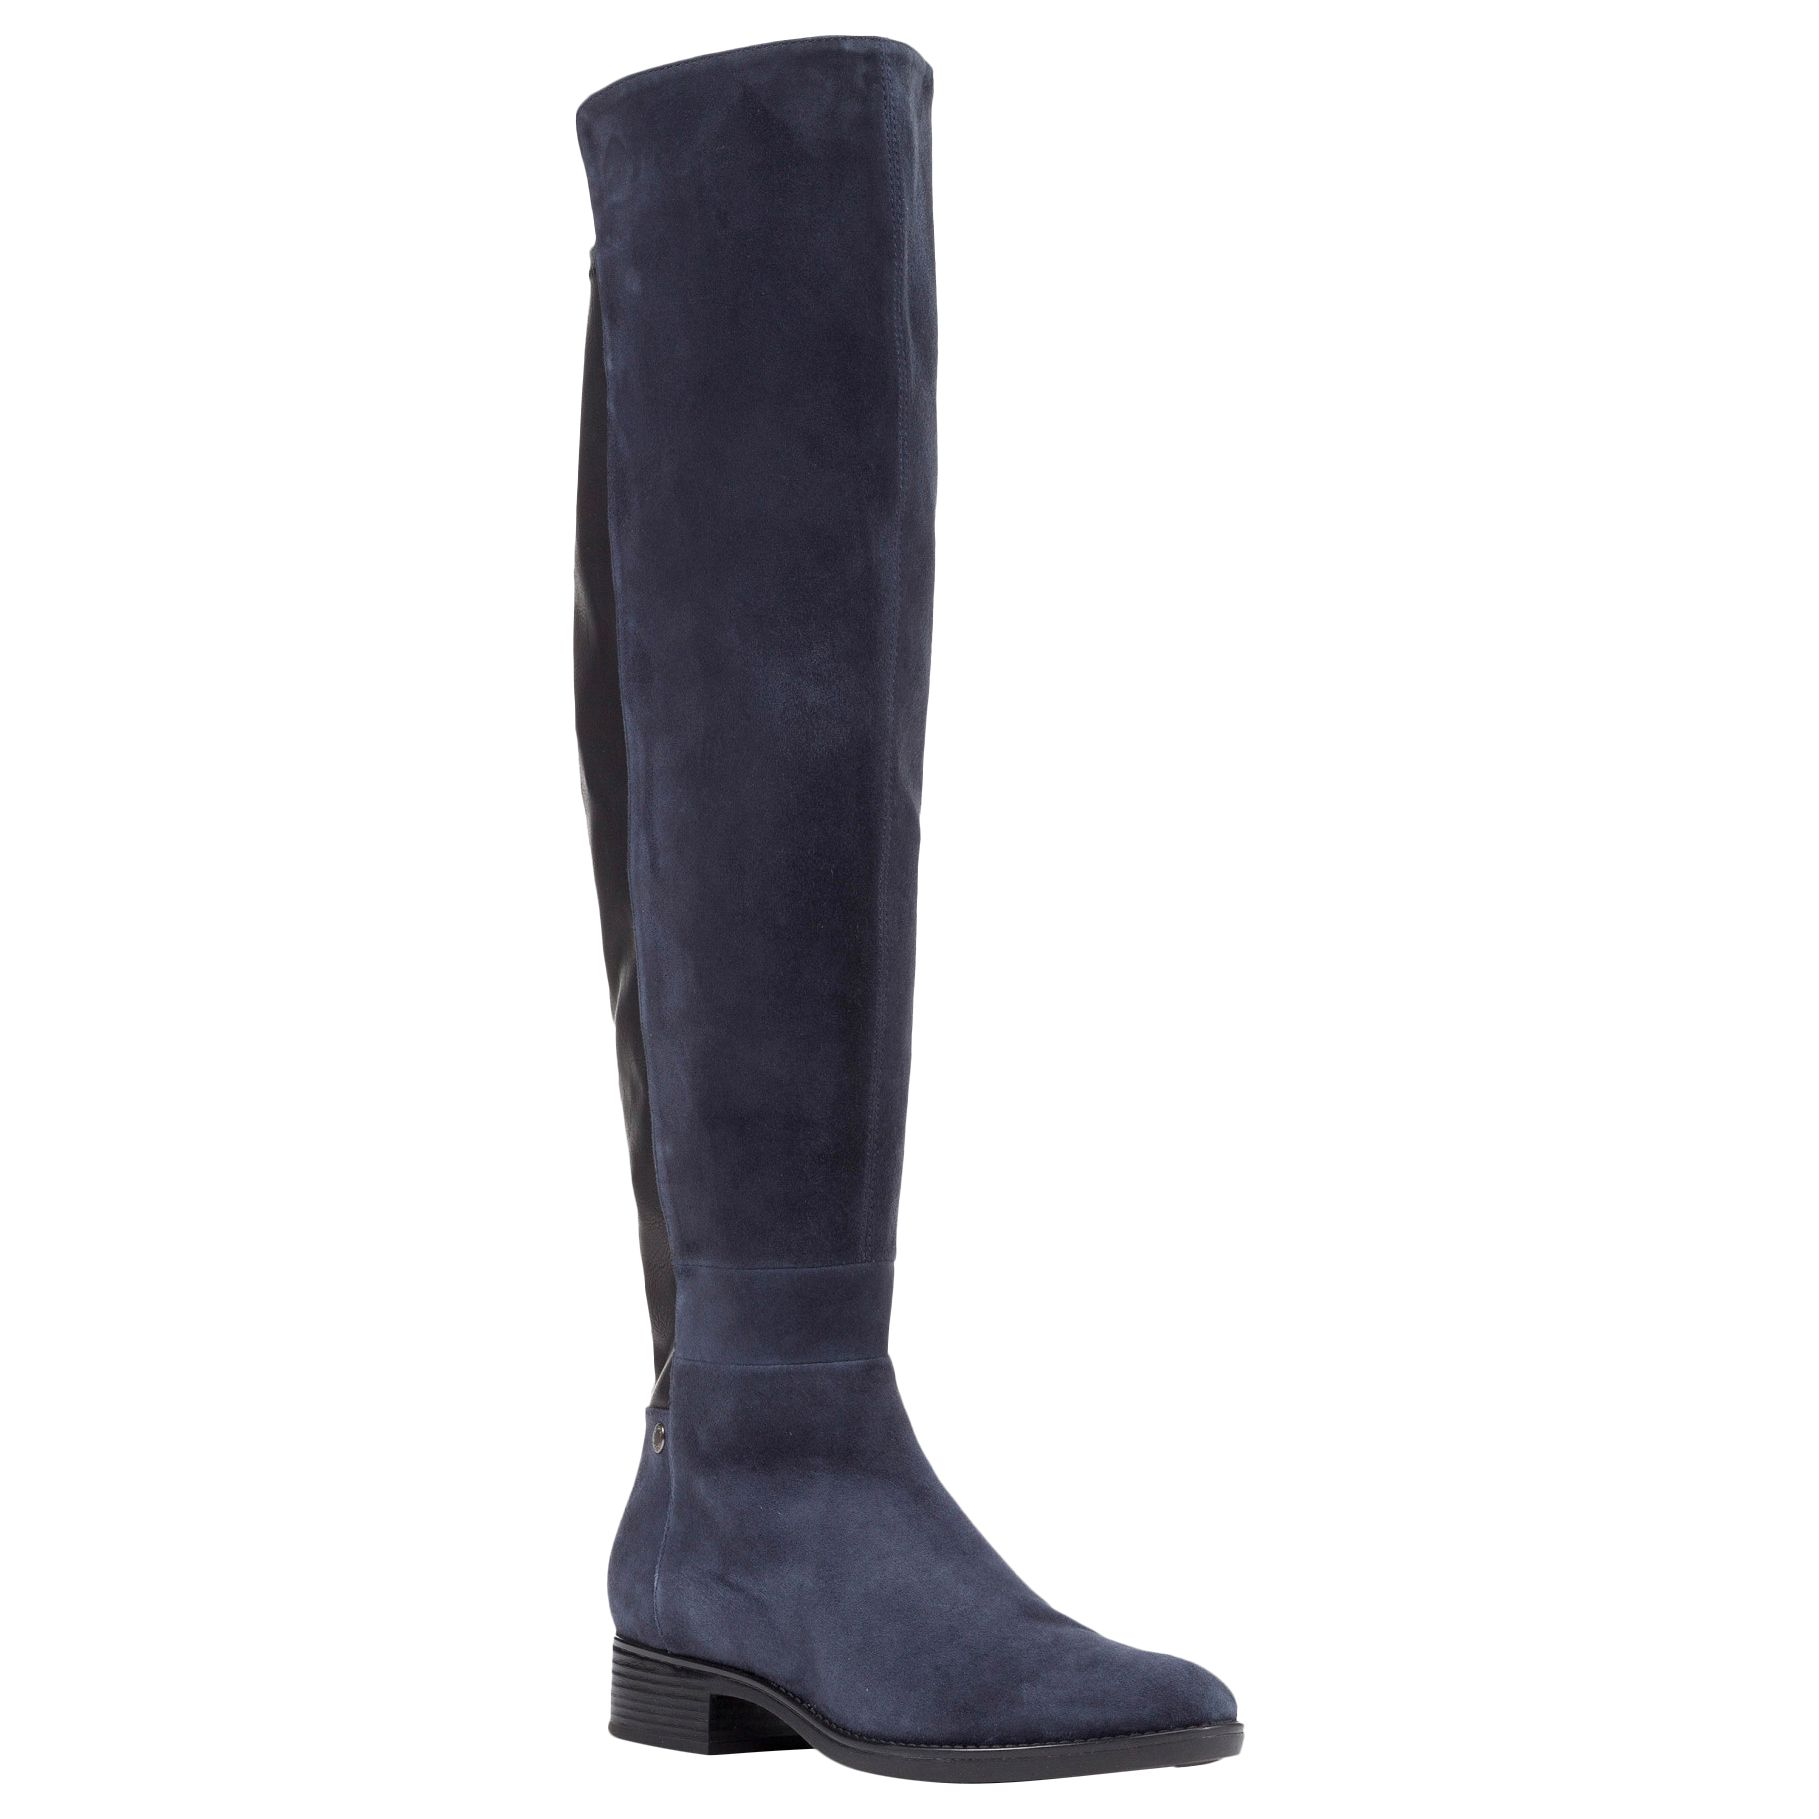 abeb8fbb33 Geox Felicity J Block Heeled Over the Knee Boots at John Lewis & Partners